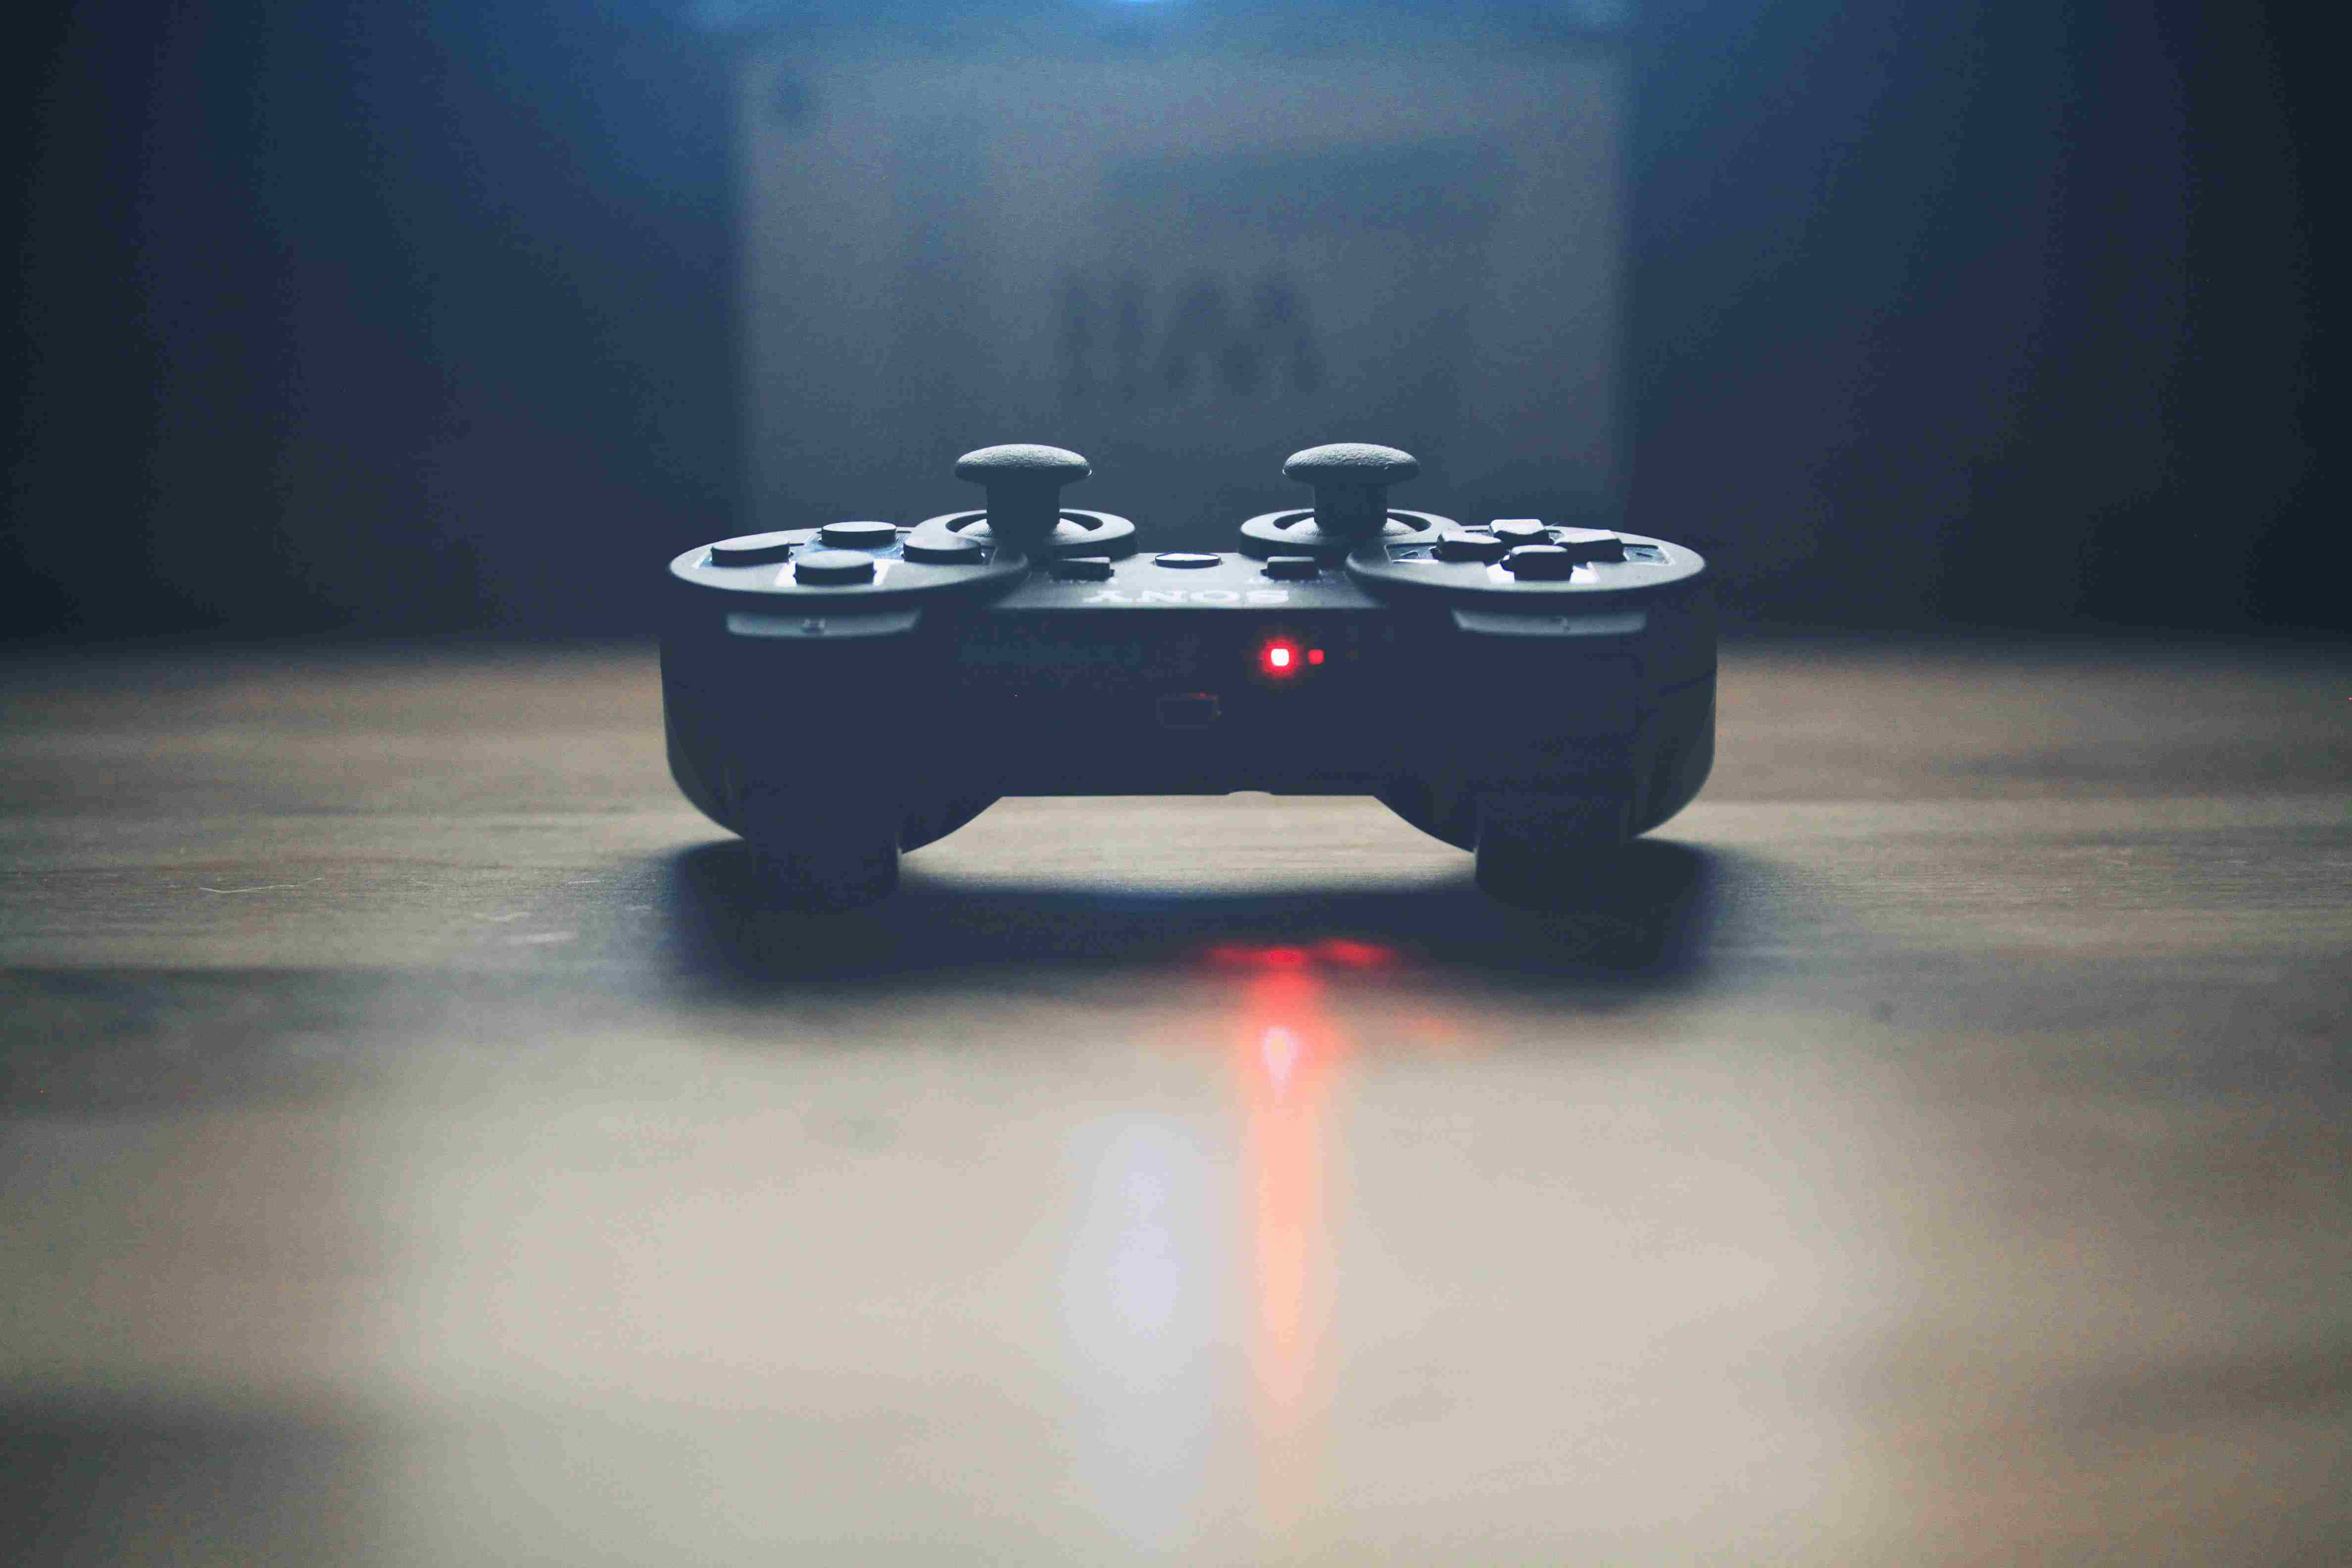 Picture of a video game controller with a red light